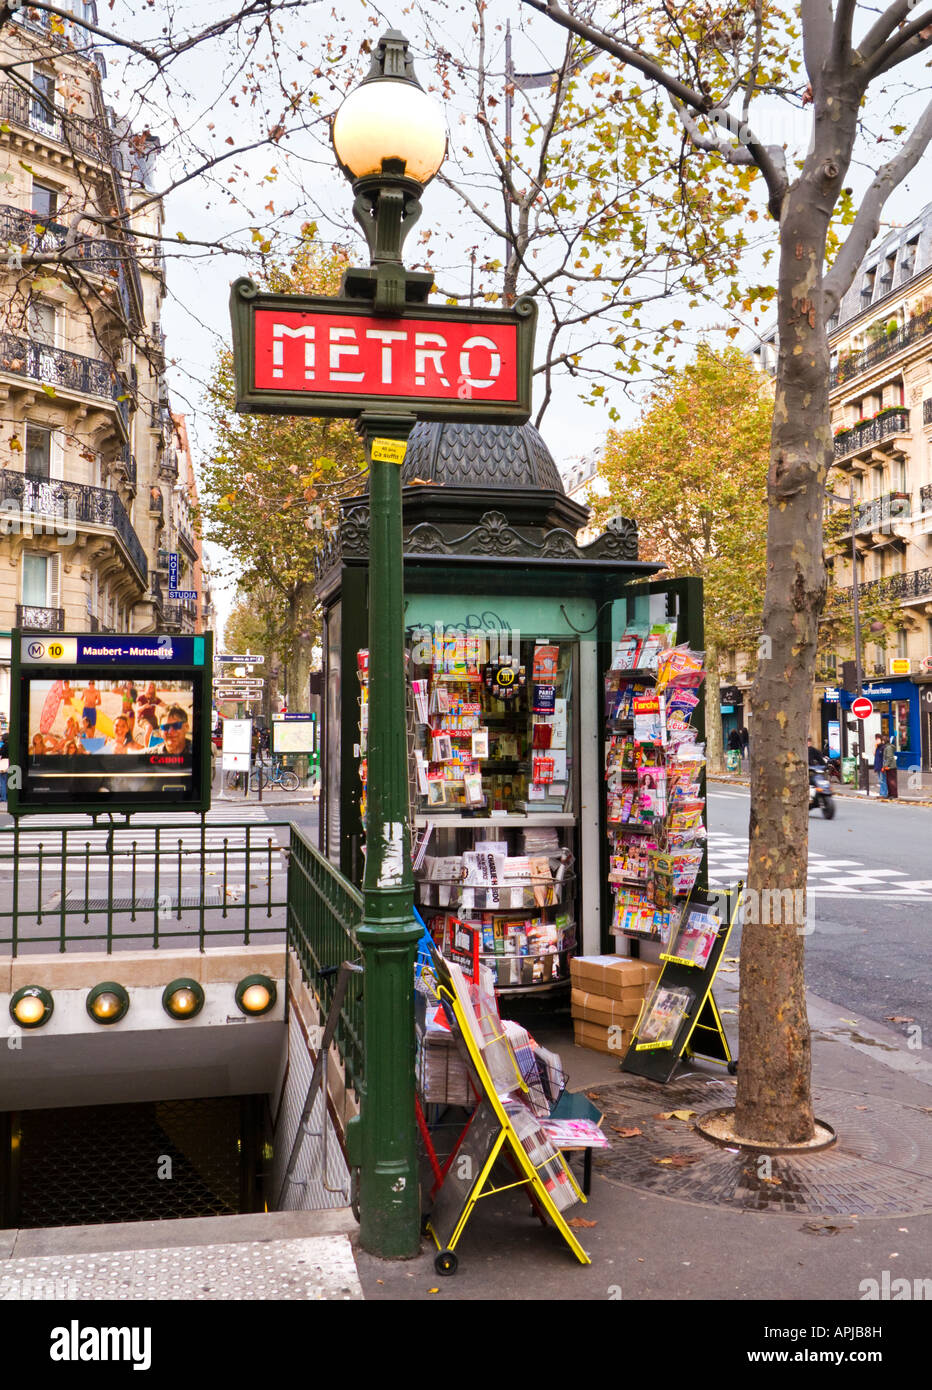 Entrance to the Paris Metro station, Place Monge, on the Boulevard Saint-Germain - Stock Image